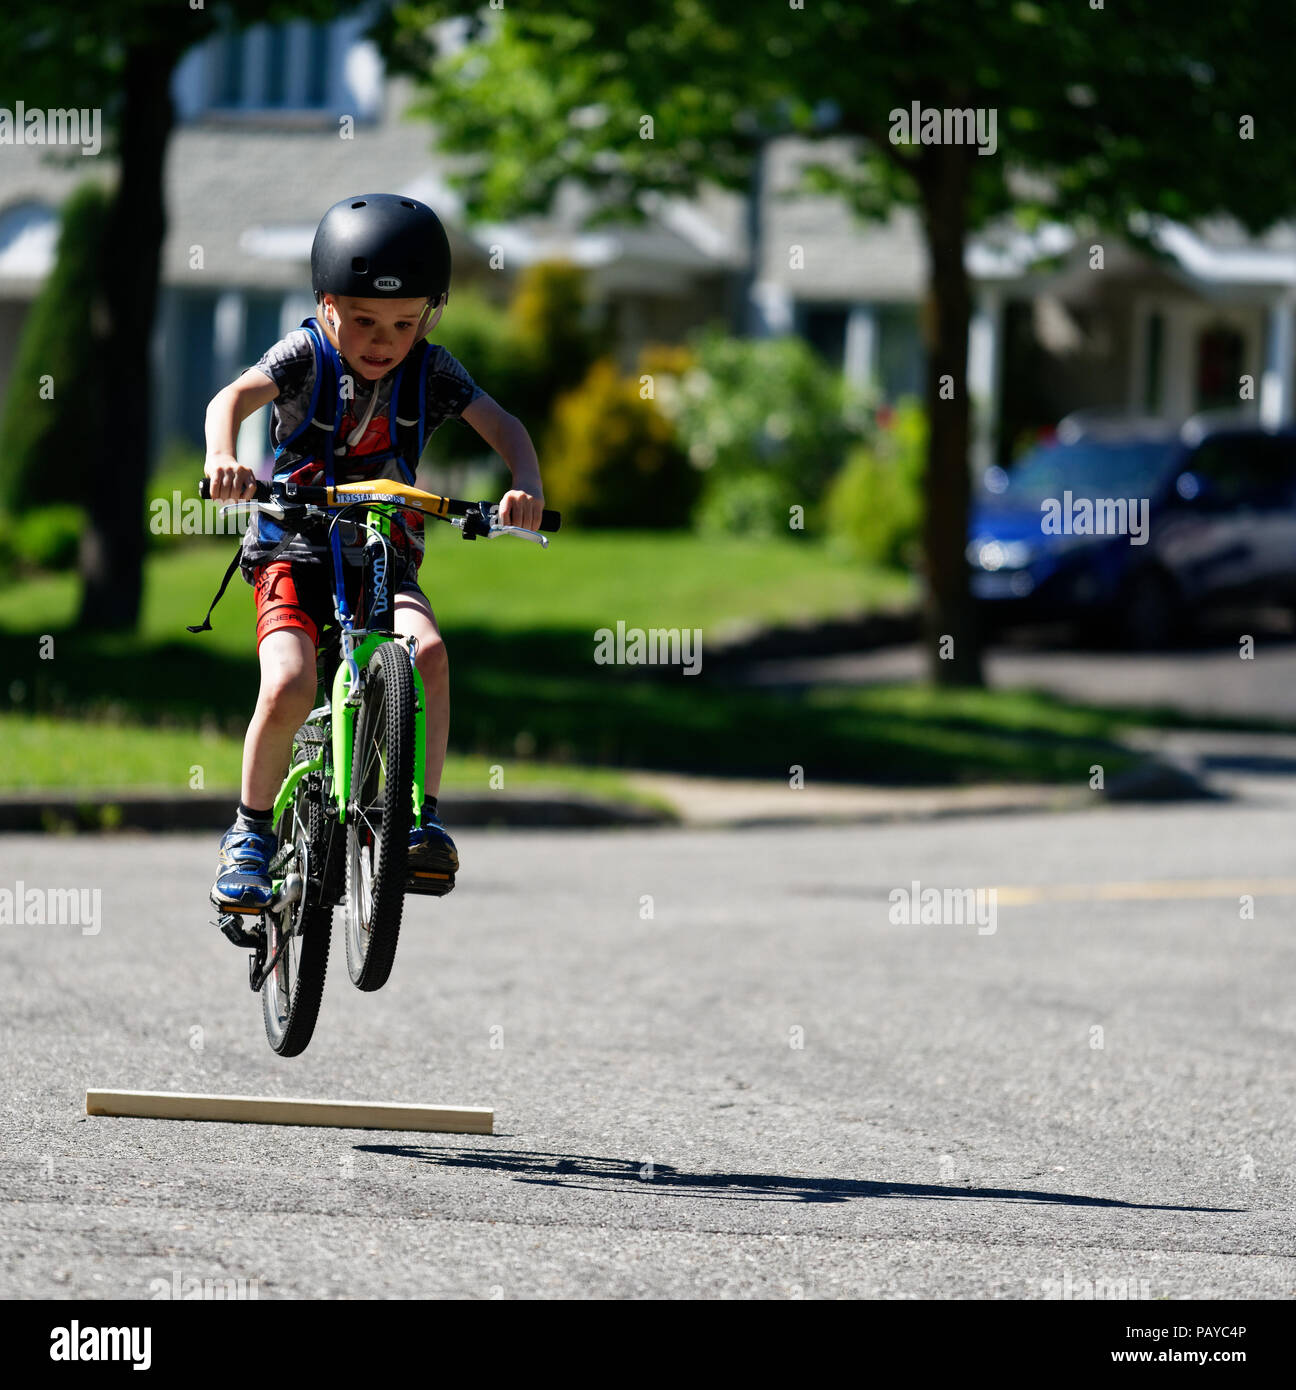 a-young-boy-6-yr-old-doing-jumps-in-the-street-on-his-bike-PAYC4P.jpg